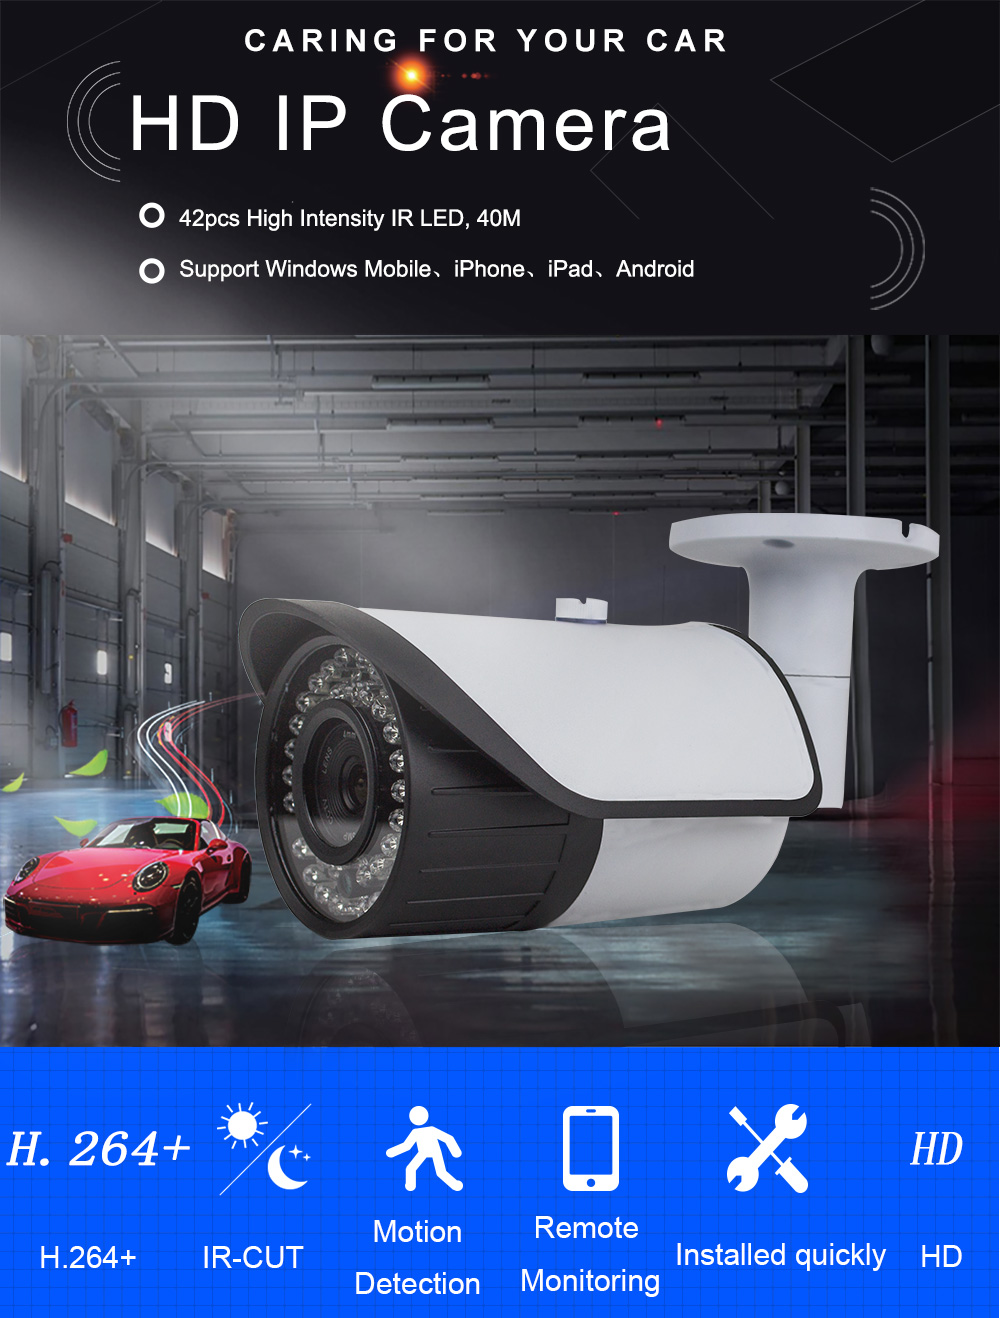 Low Price 4mp Full Hd Bullet Network Ip Cam Viewer Cctv Video Monitor  Camera Online - Buy Cctv Camera Low Price,Ip Cam Viewer,Ip Video Camera  Product